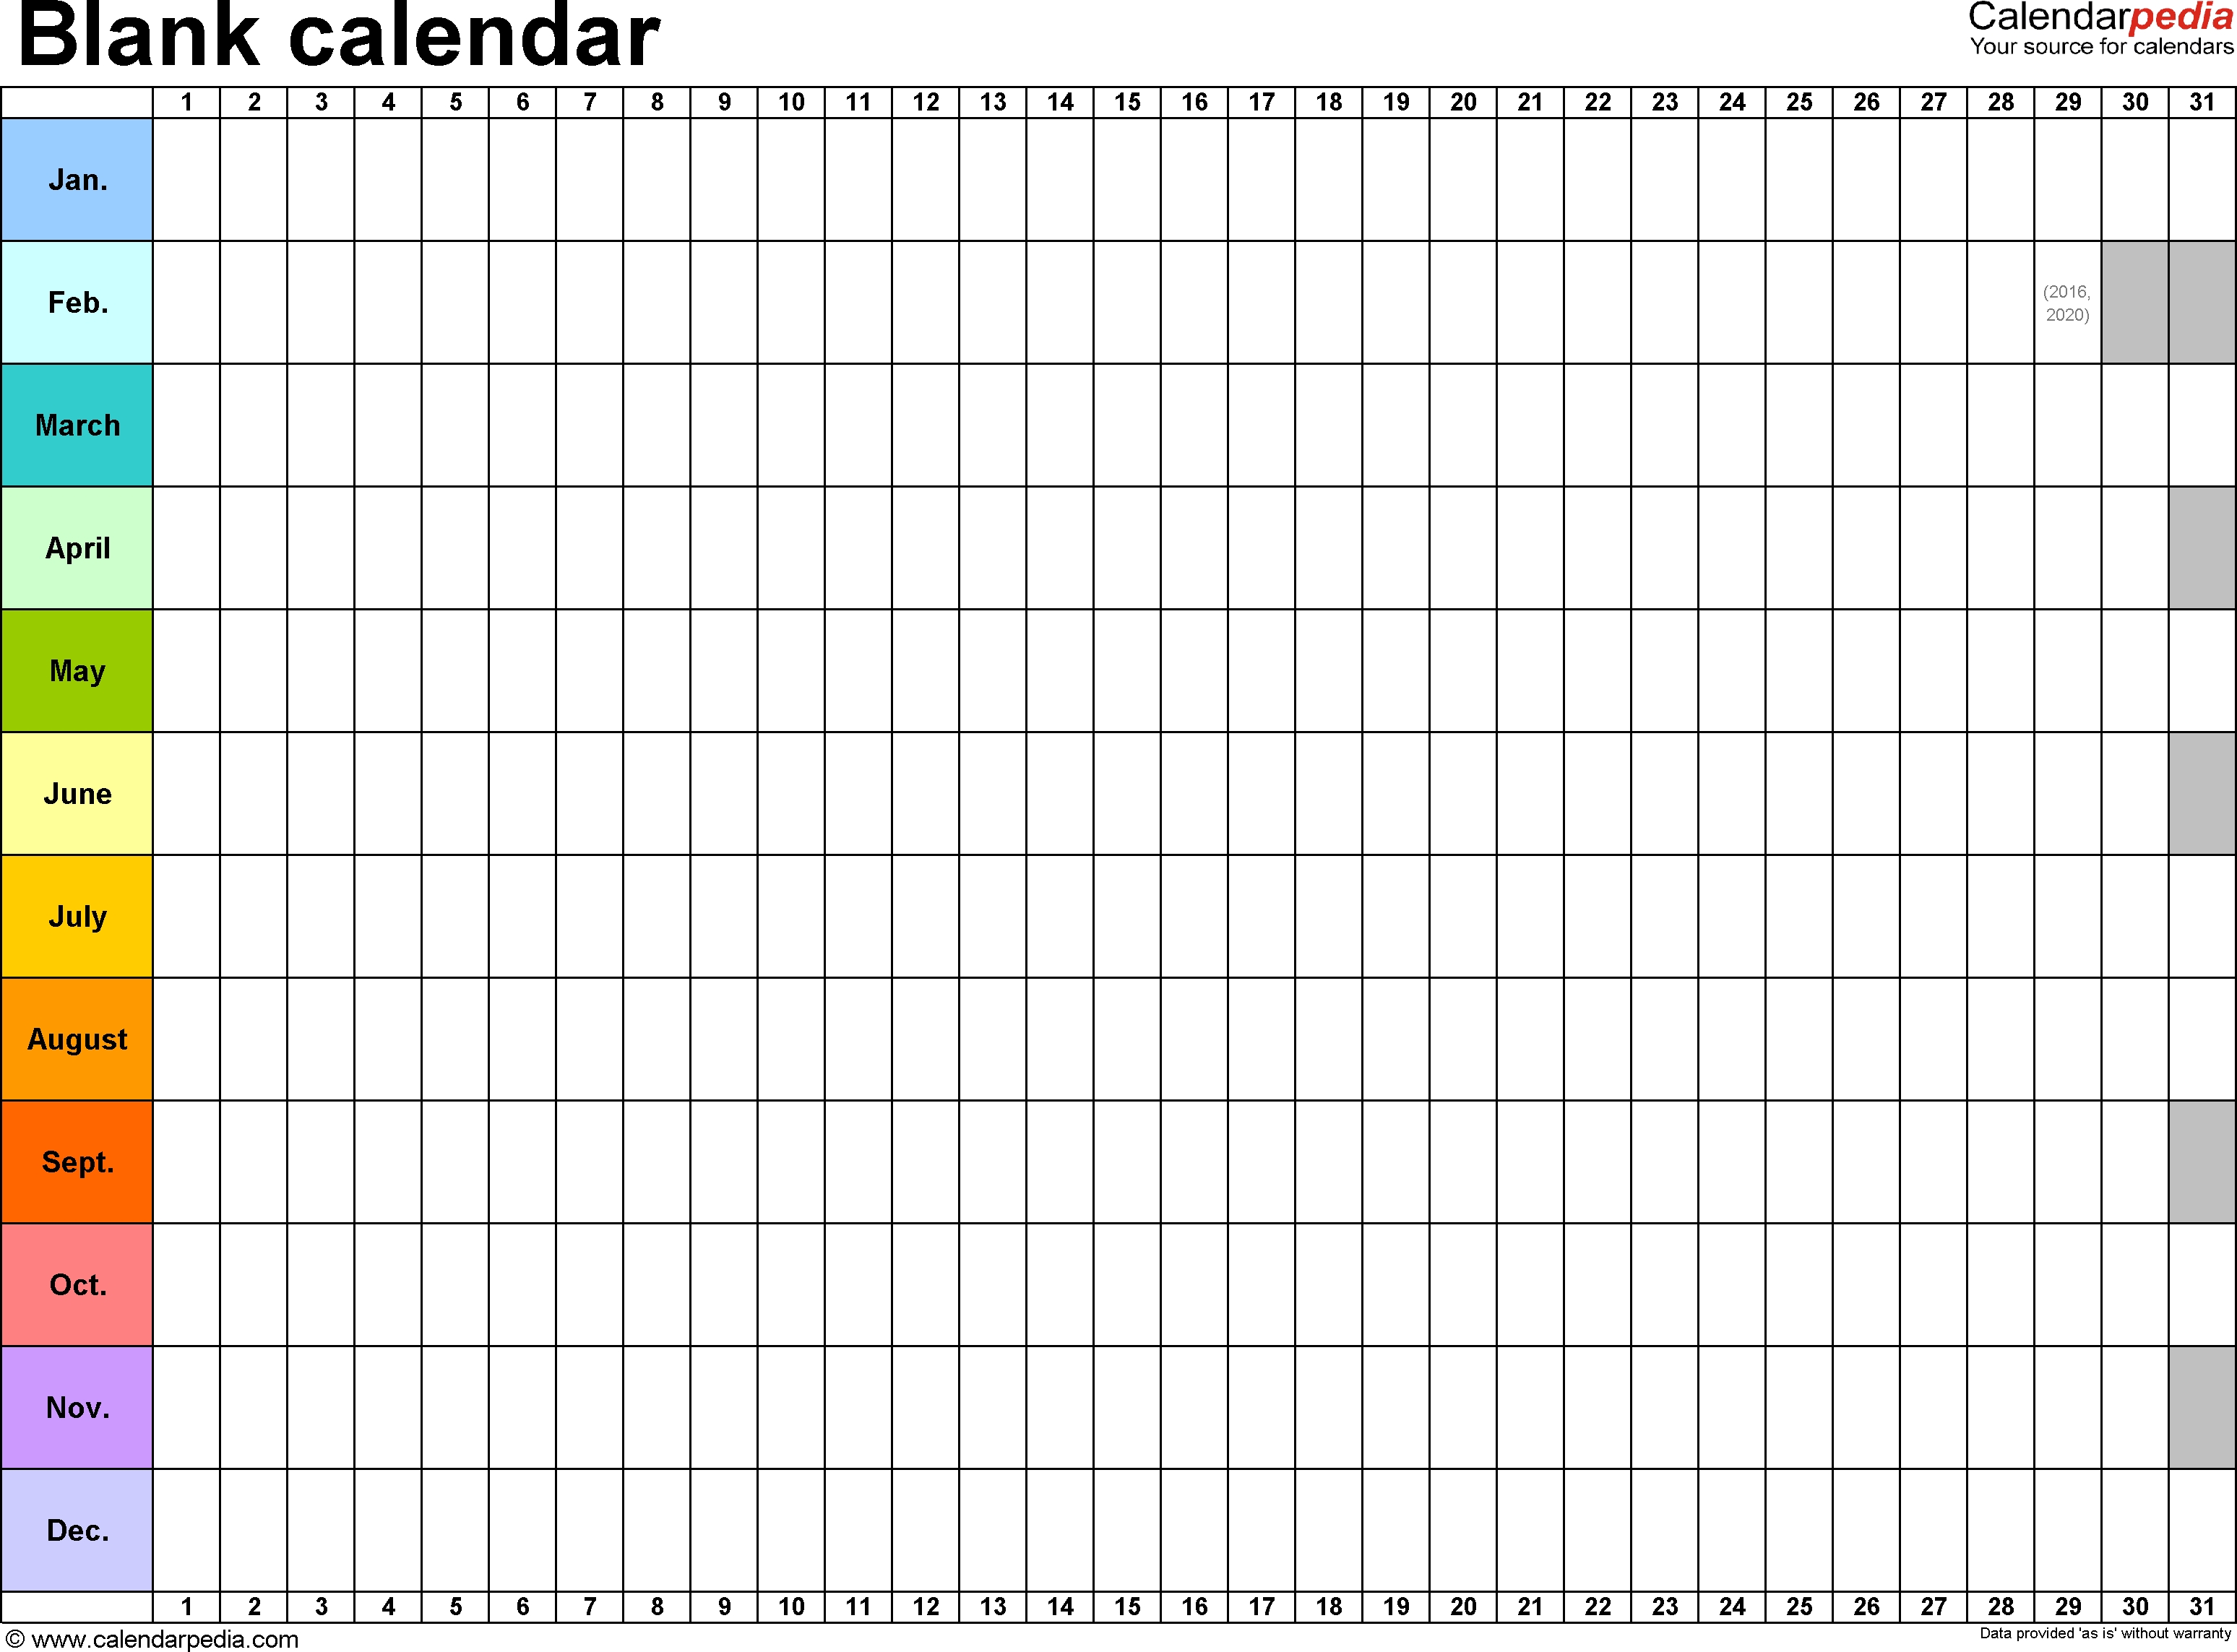 Blank Calendar - 9 Free Printable Microsoft Word Templates  Blank Calendar To Fill In Free